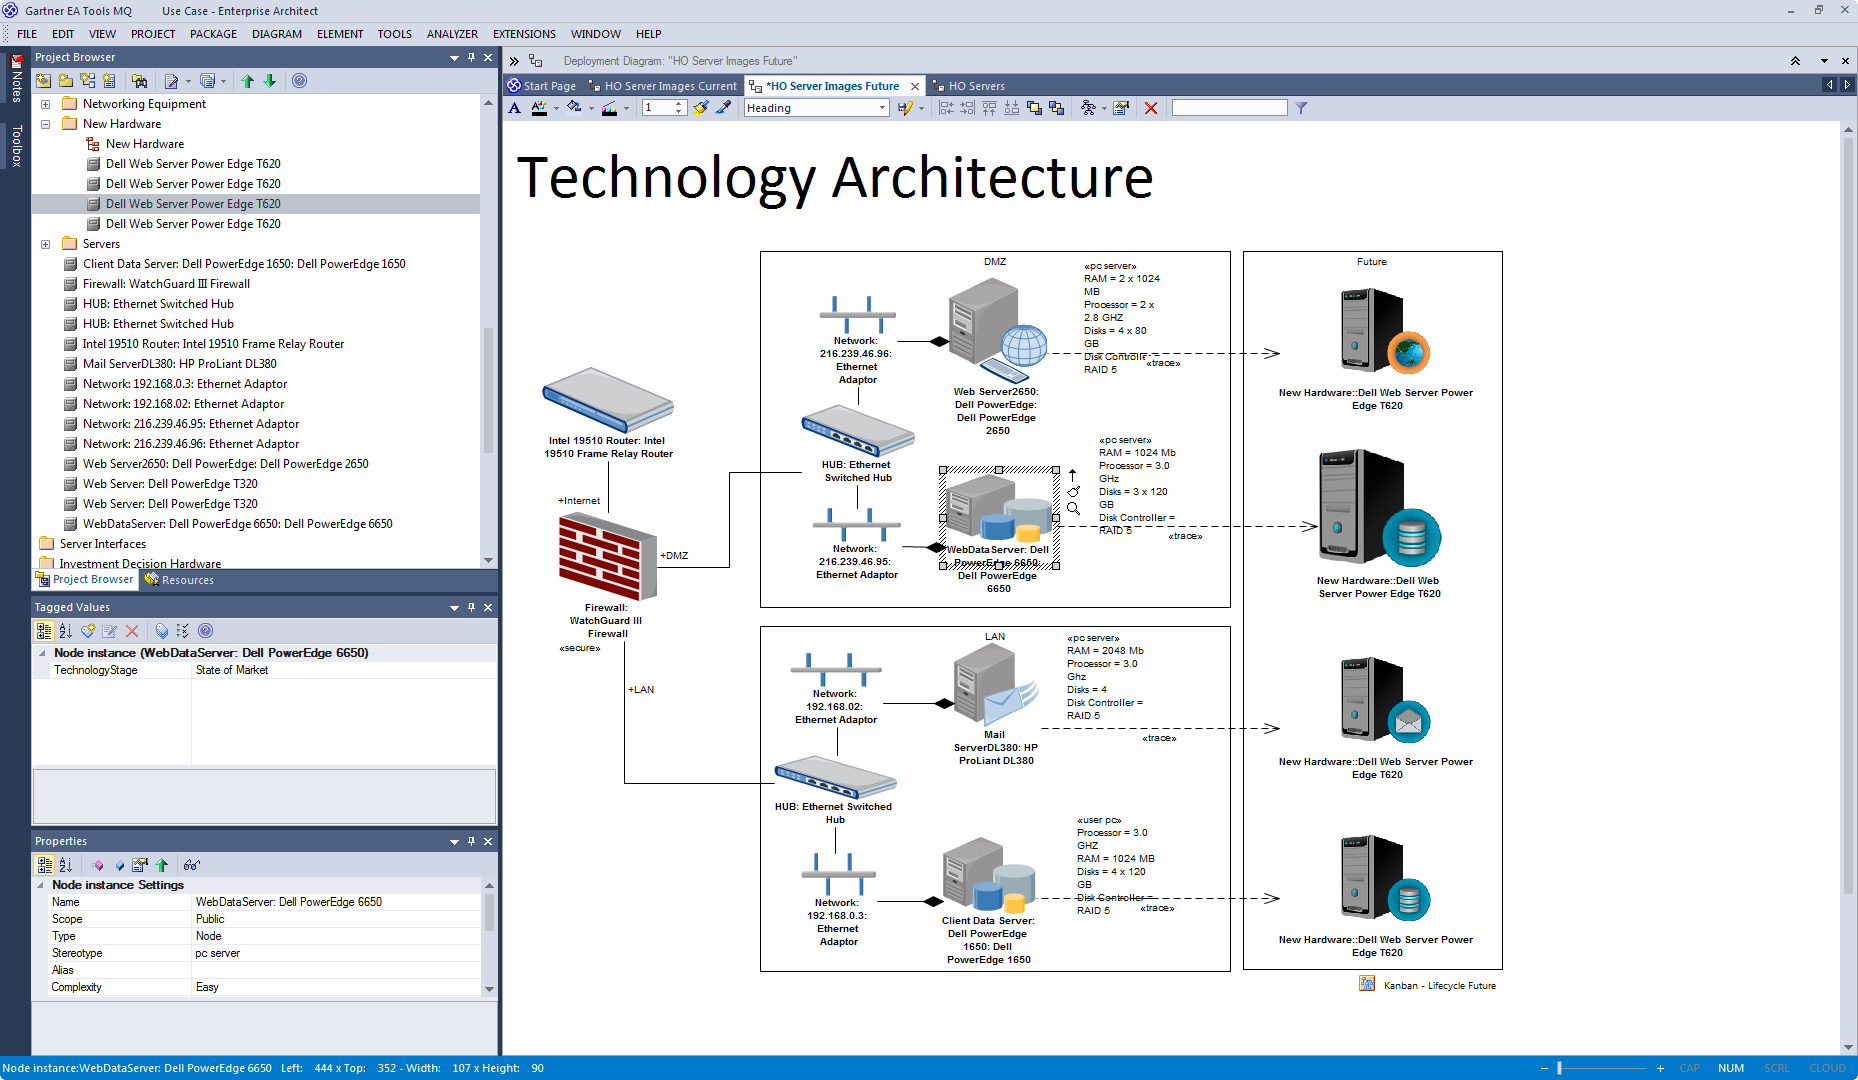 Enterprise architect the enterprise architecture solution sparx enterprise architect the enterprise architecture solution sparx systems malvernweather Choice Image